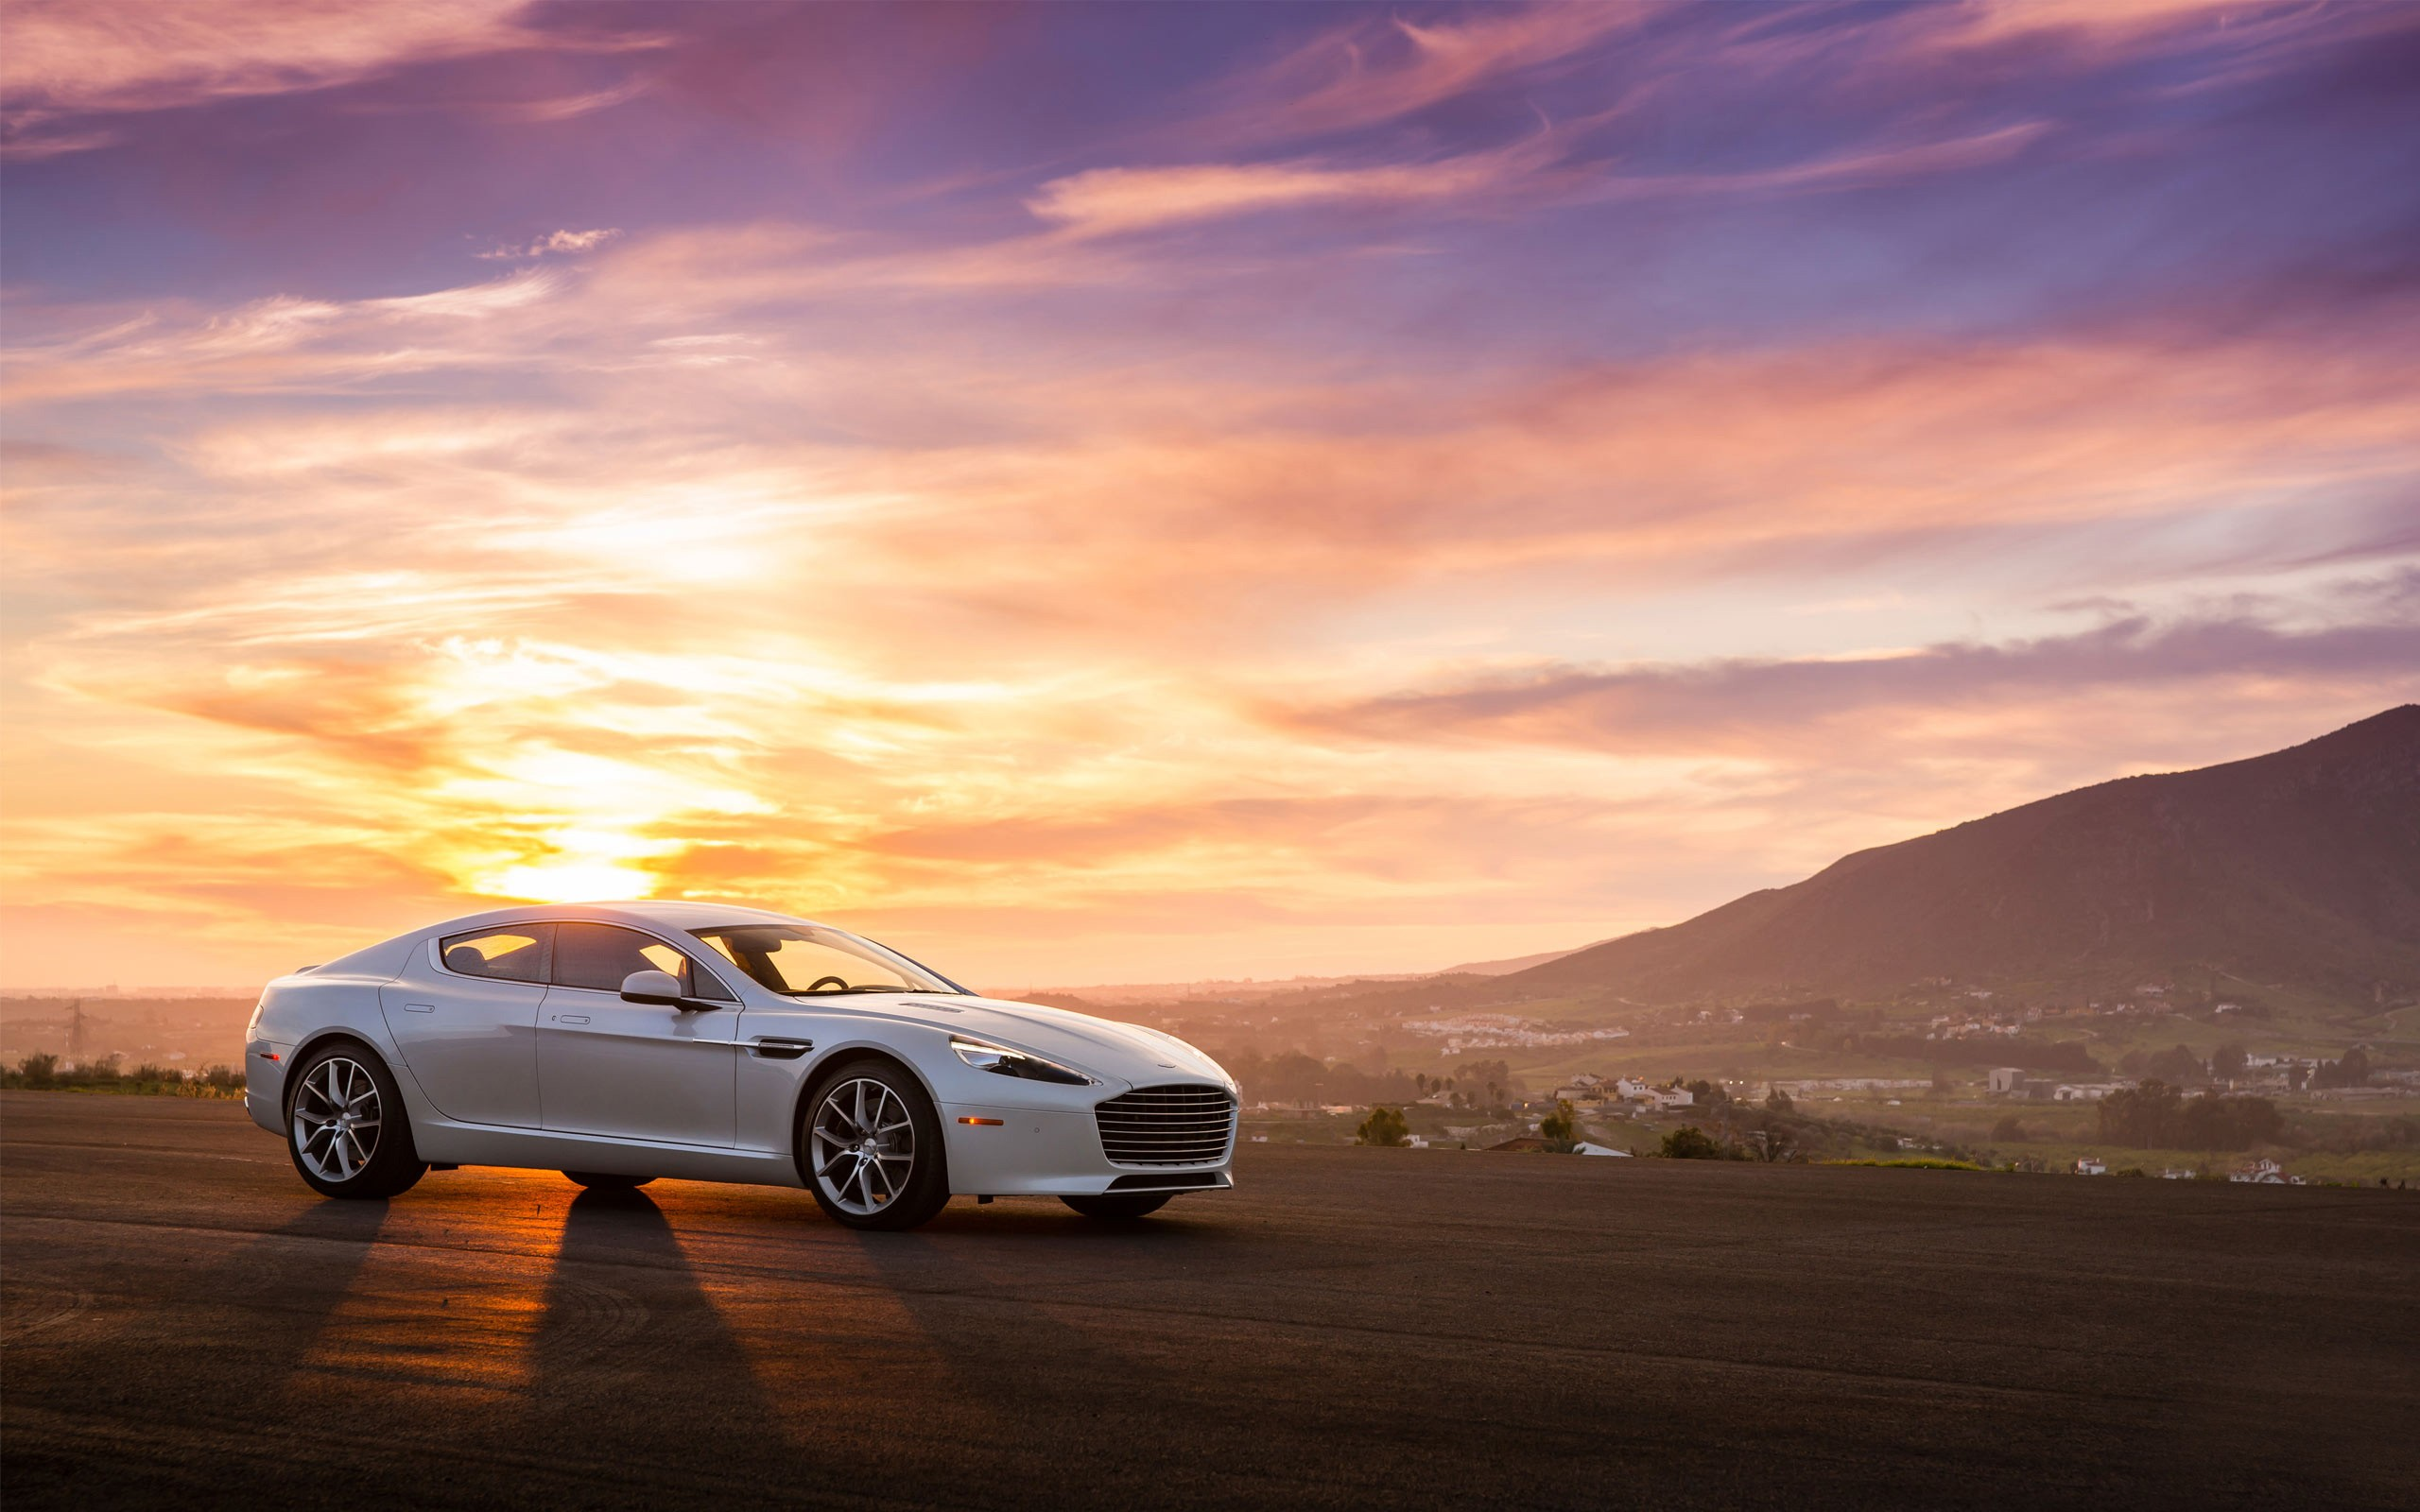 2014 Hd Wallpapers: 2014 Aston Martin Rapide S Wallpaper